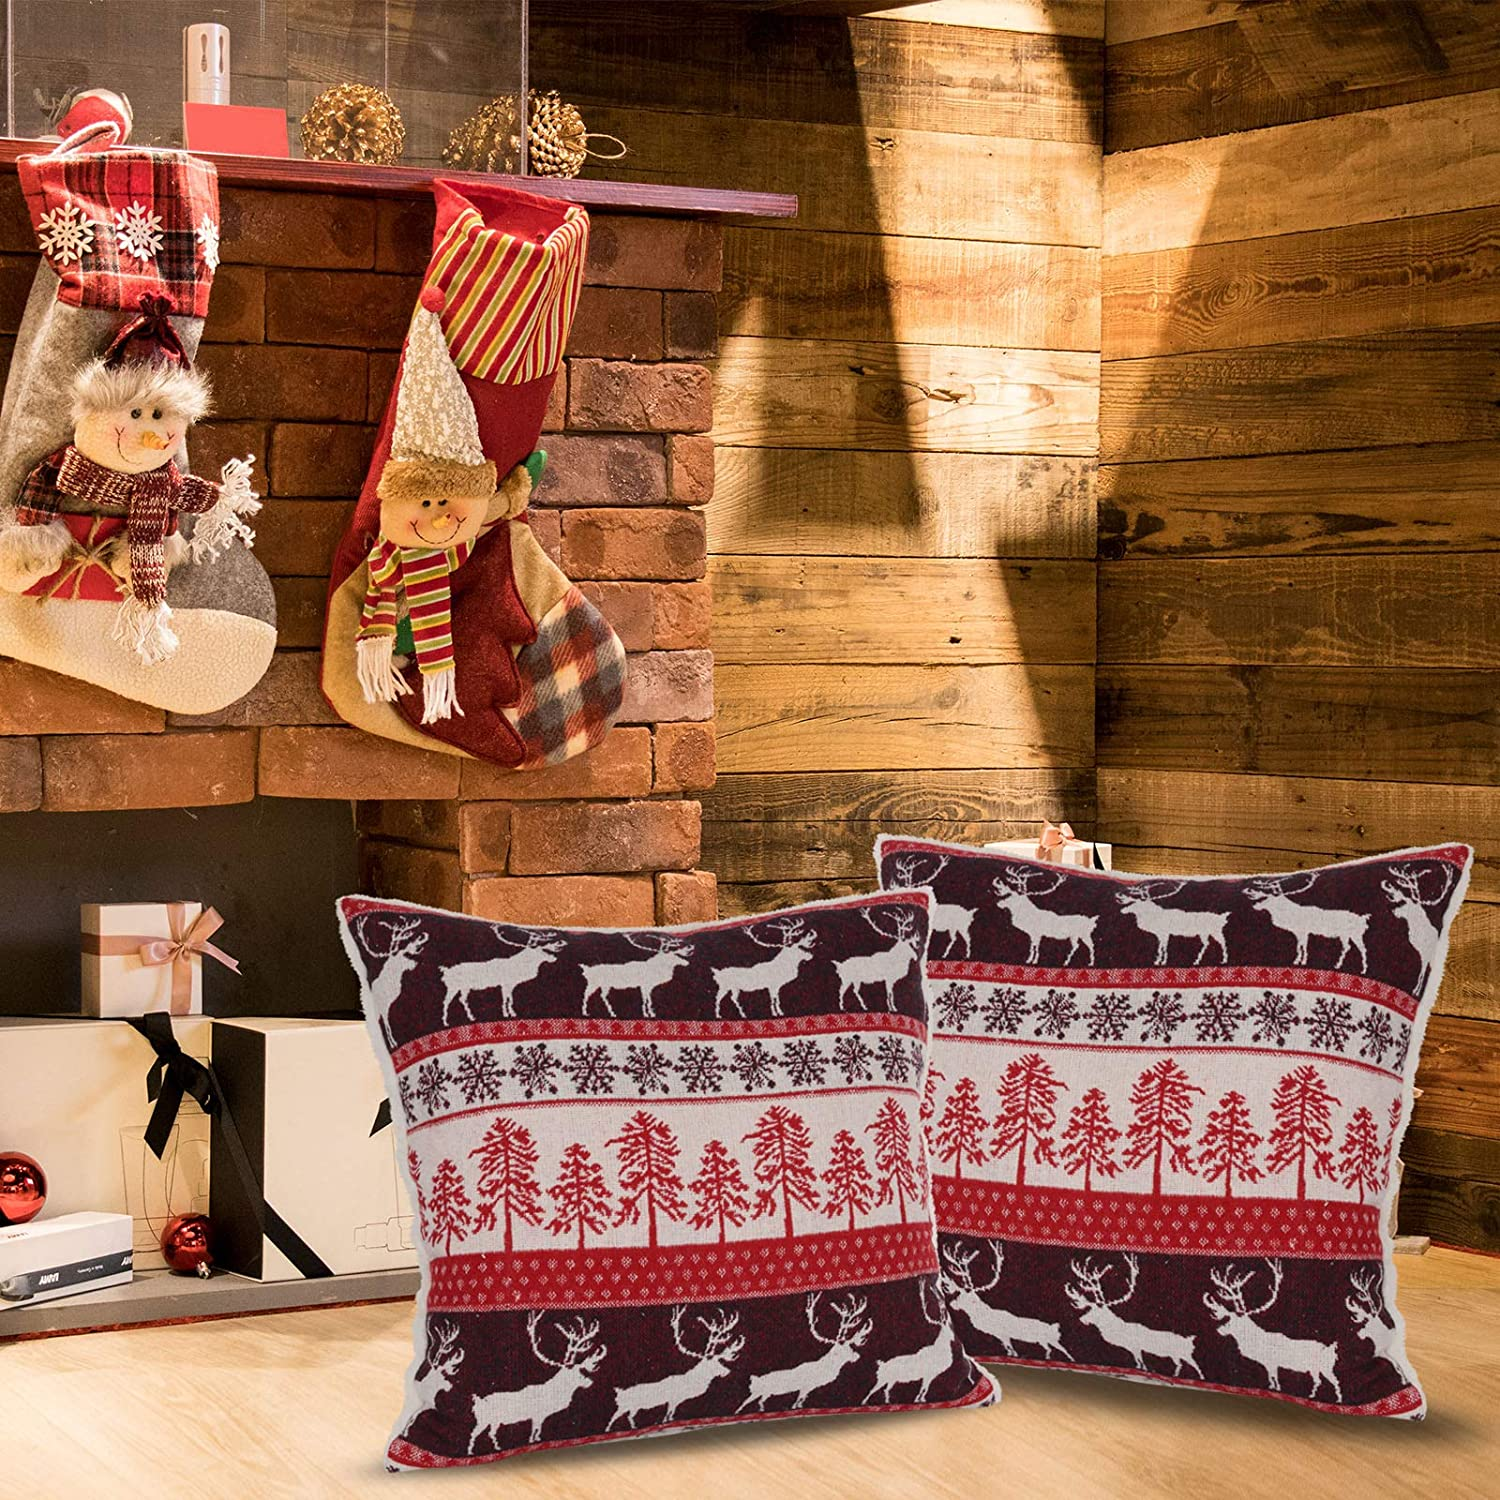 oTemrcloc 1PC Christmas Pillow Xmas Throw Pillow 18''x18'' Winter Holiday Decorative Cushion Accent Pillow with Snowflake Xmas Tree&Reindeer for Home Sofa Couch Bed Chairs